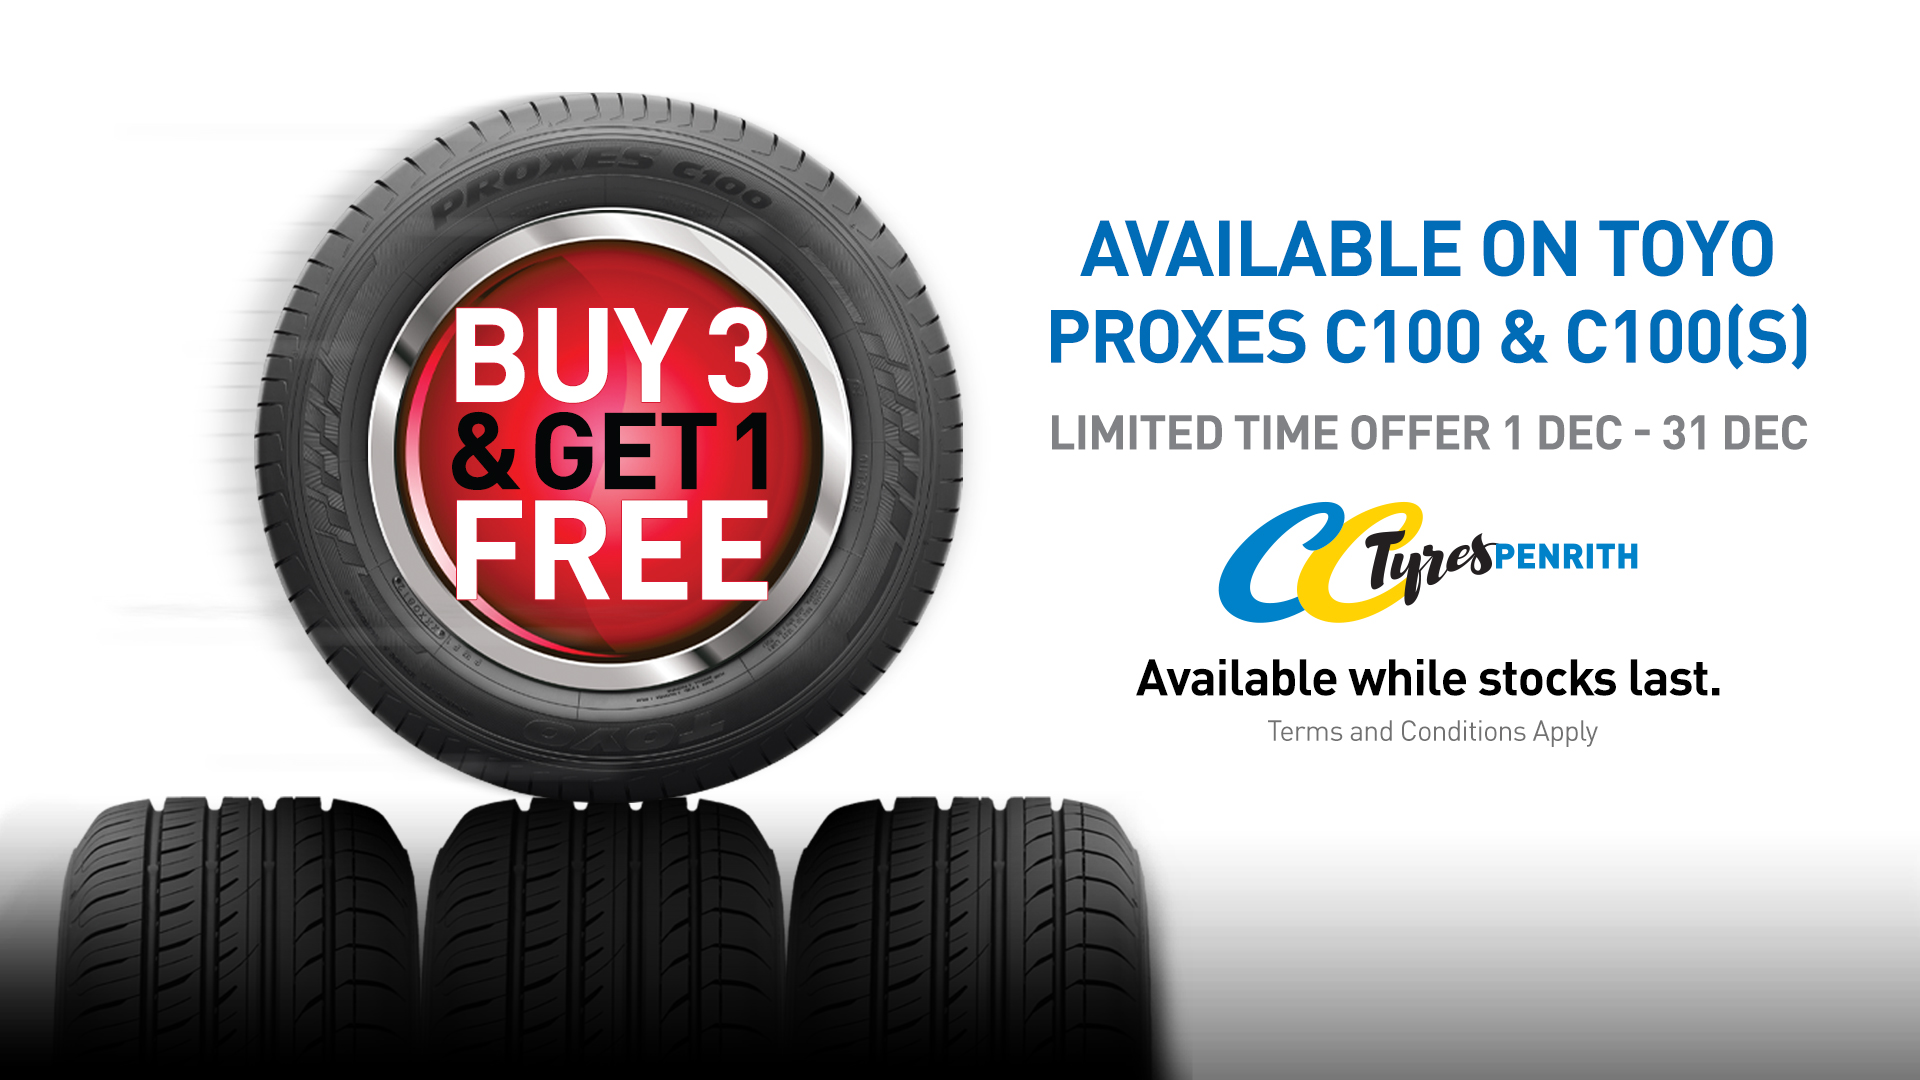 Buy 3 Get 1 Free on Toyo Proxes C100 & C100s